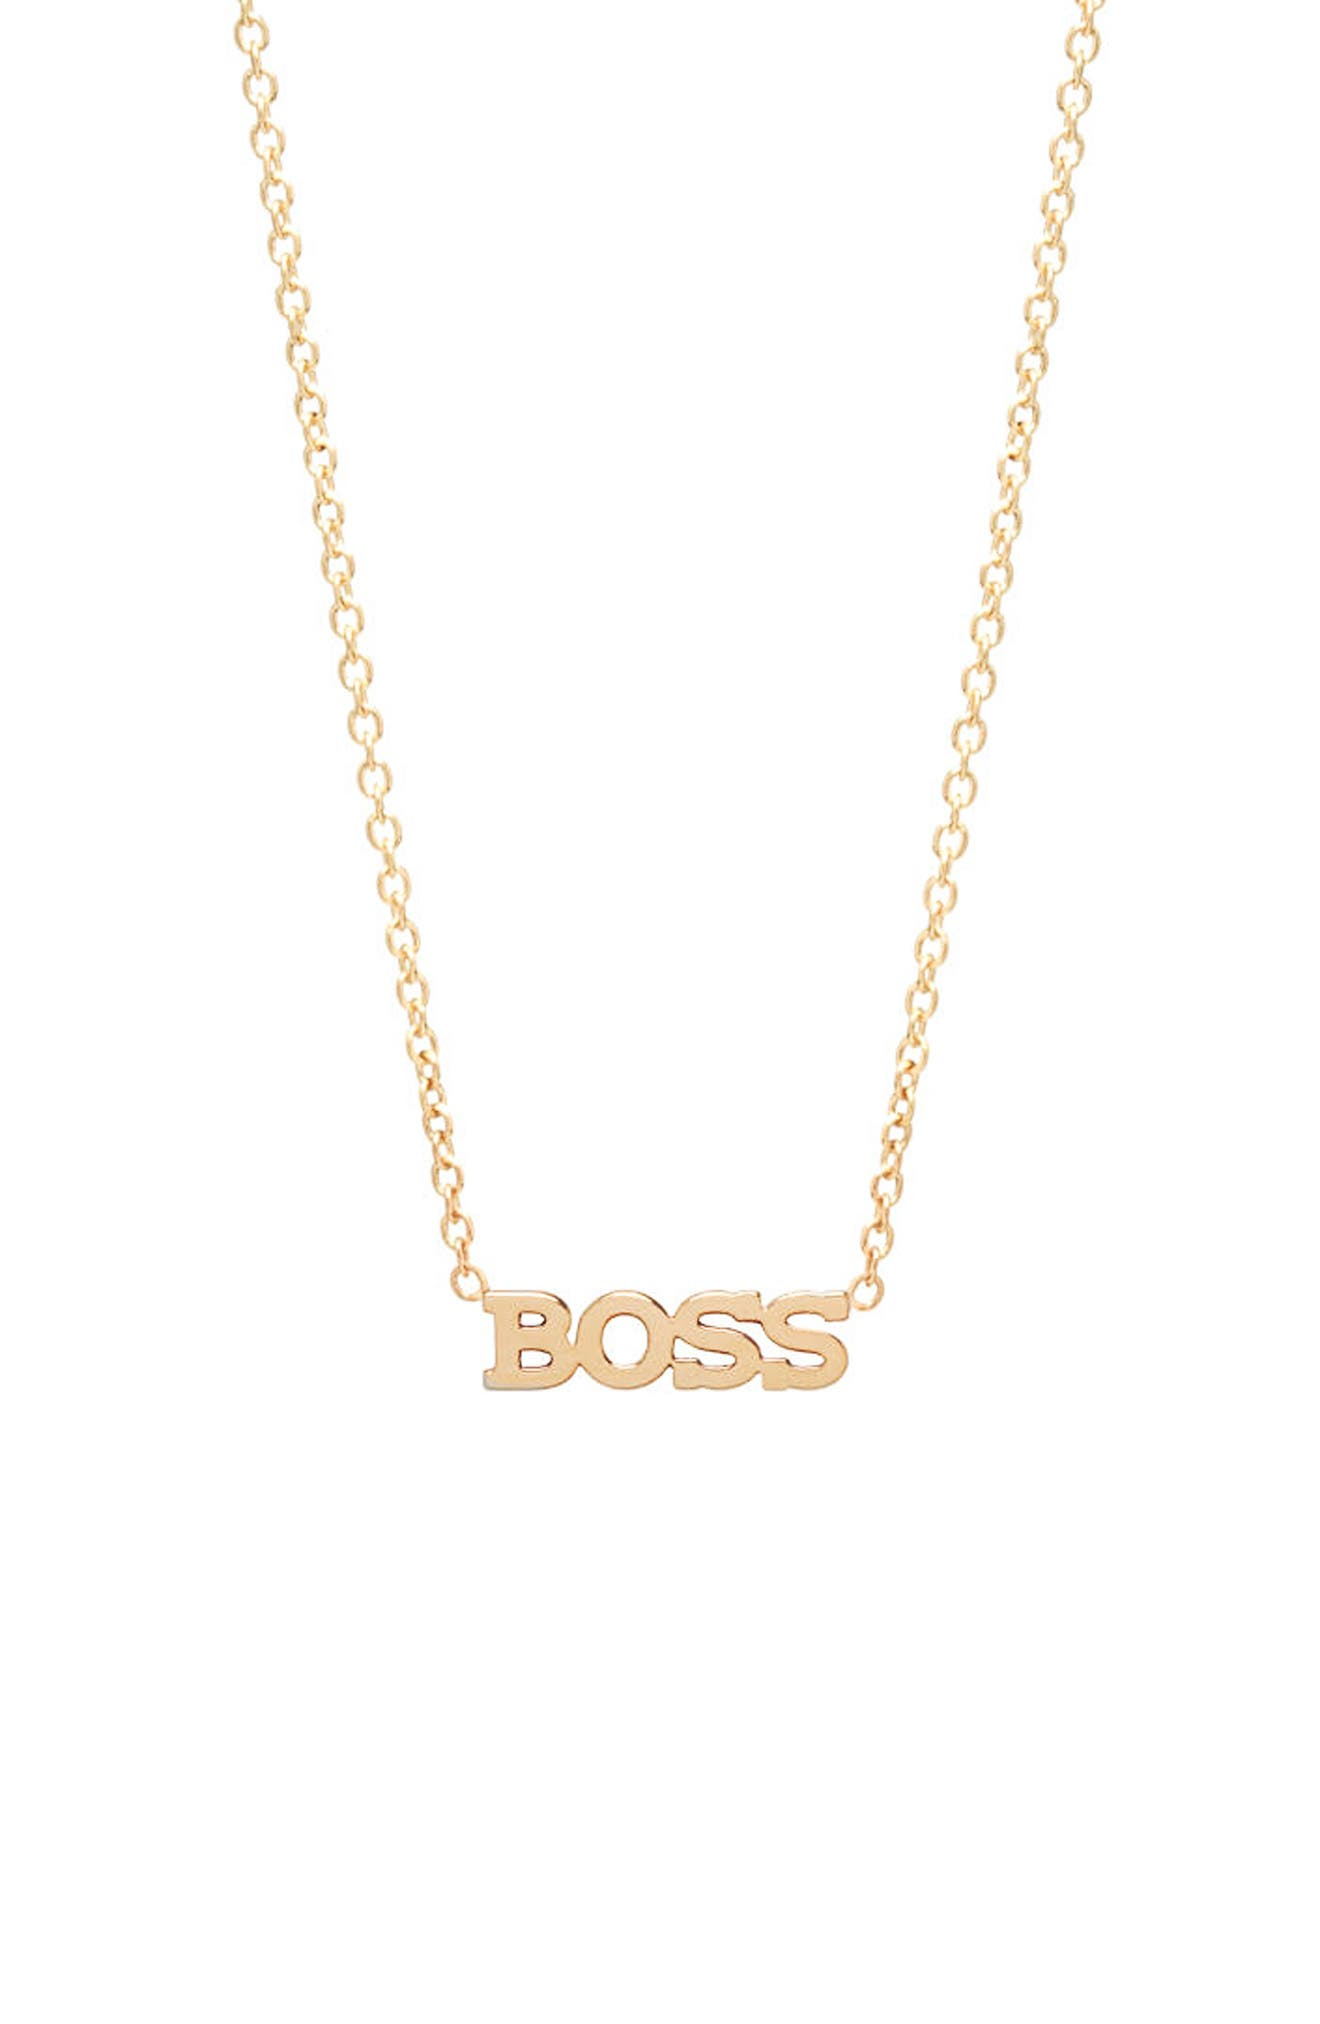 Itty Bitty Typographical Pendant Necklace,                             Main thumbnail 1, color,                             YELLOW GOLD/ GOLD